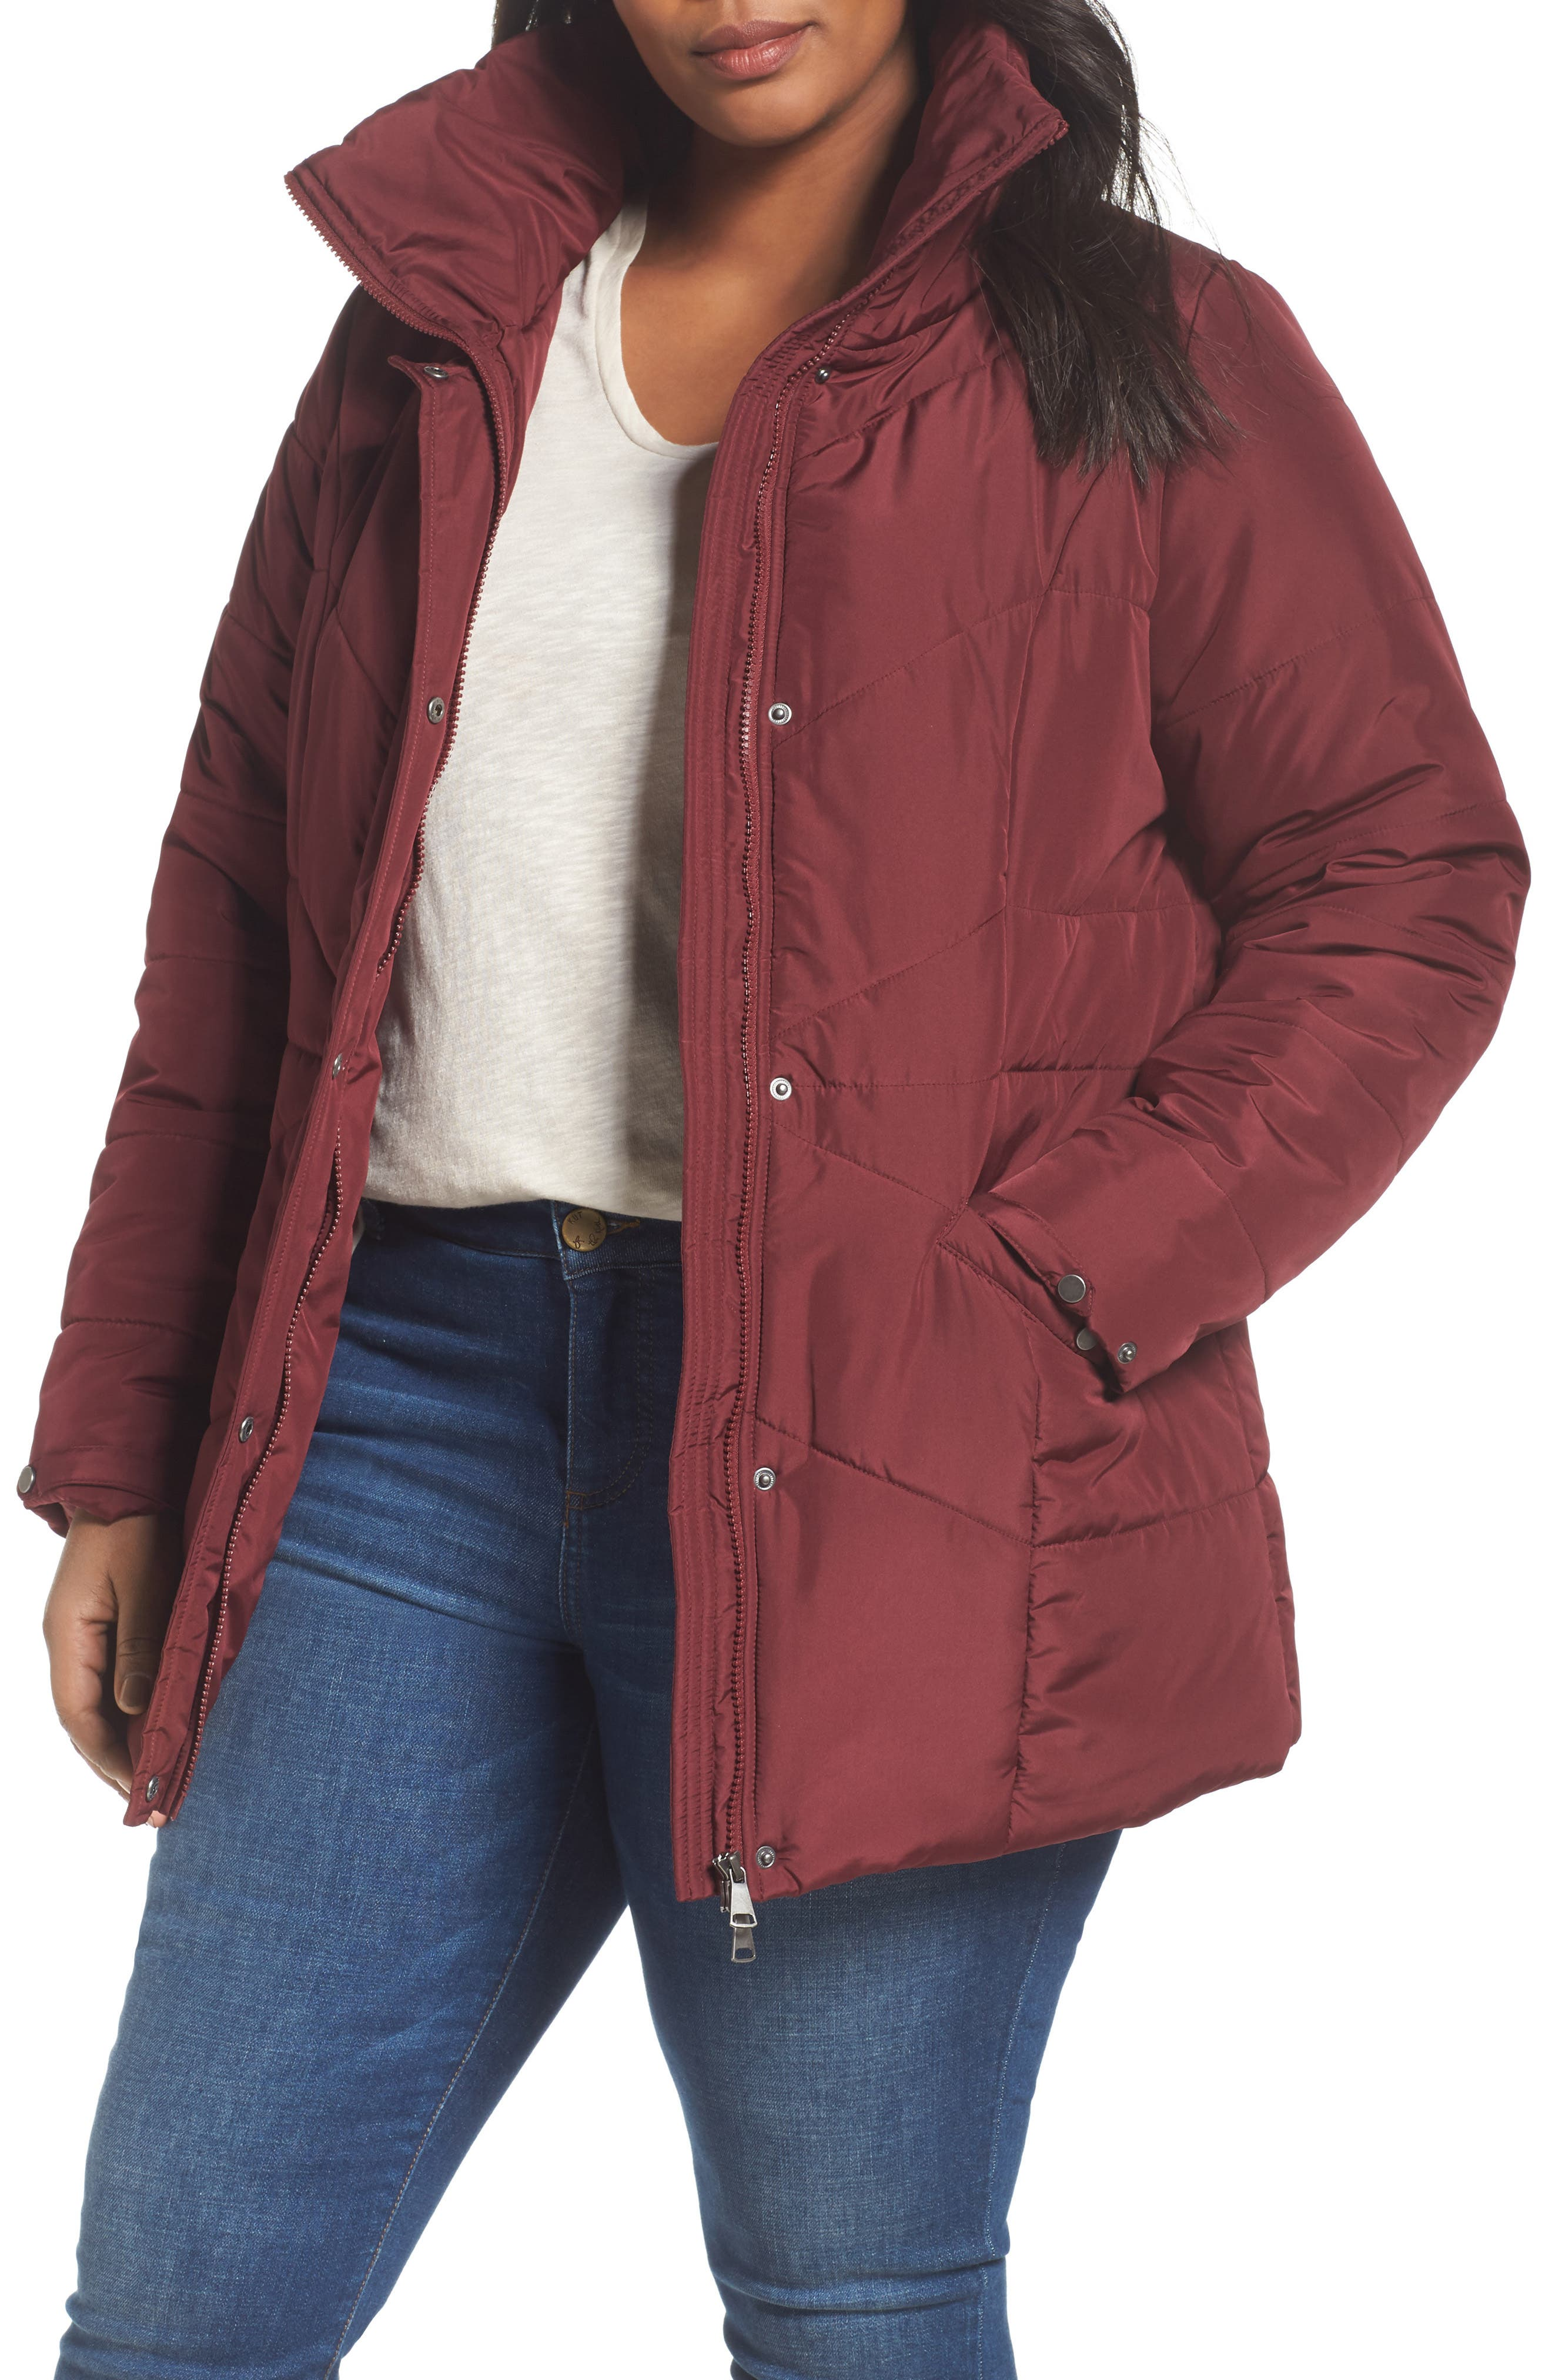 Valsi Puffer Jacket,                         Main,                         color, 935